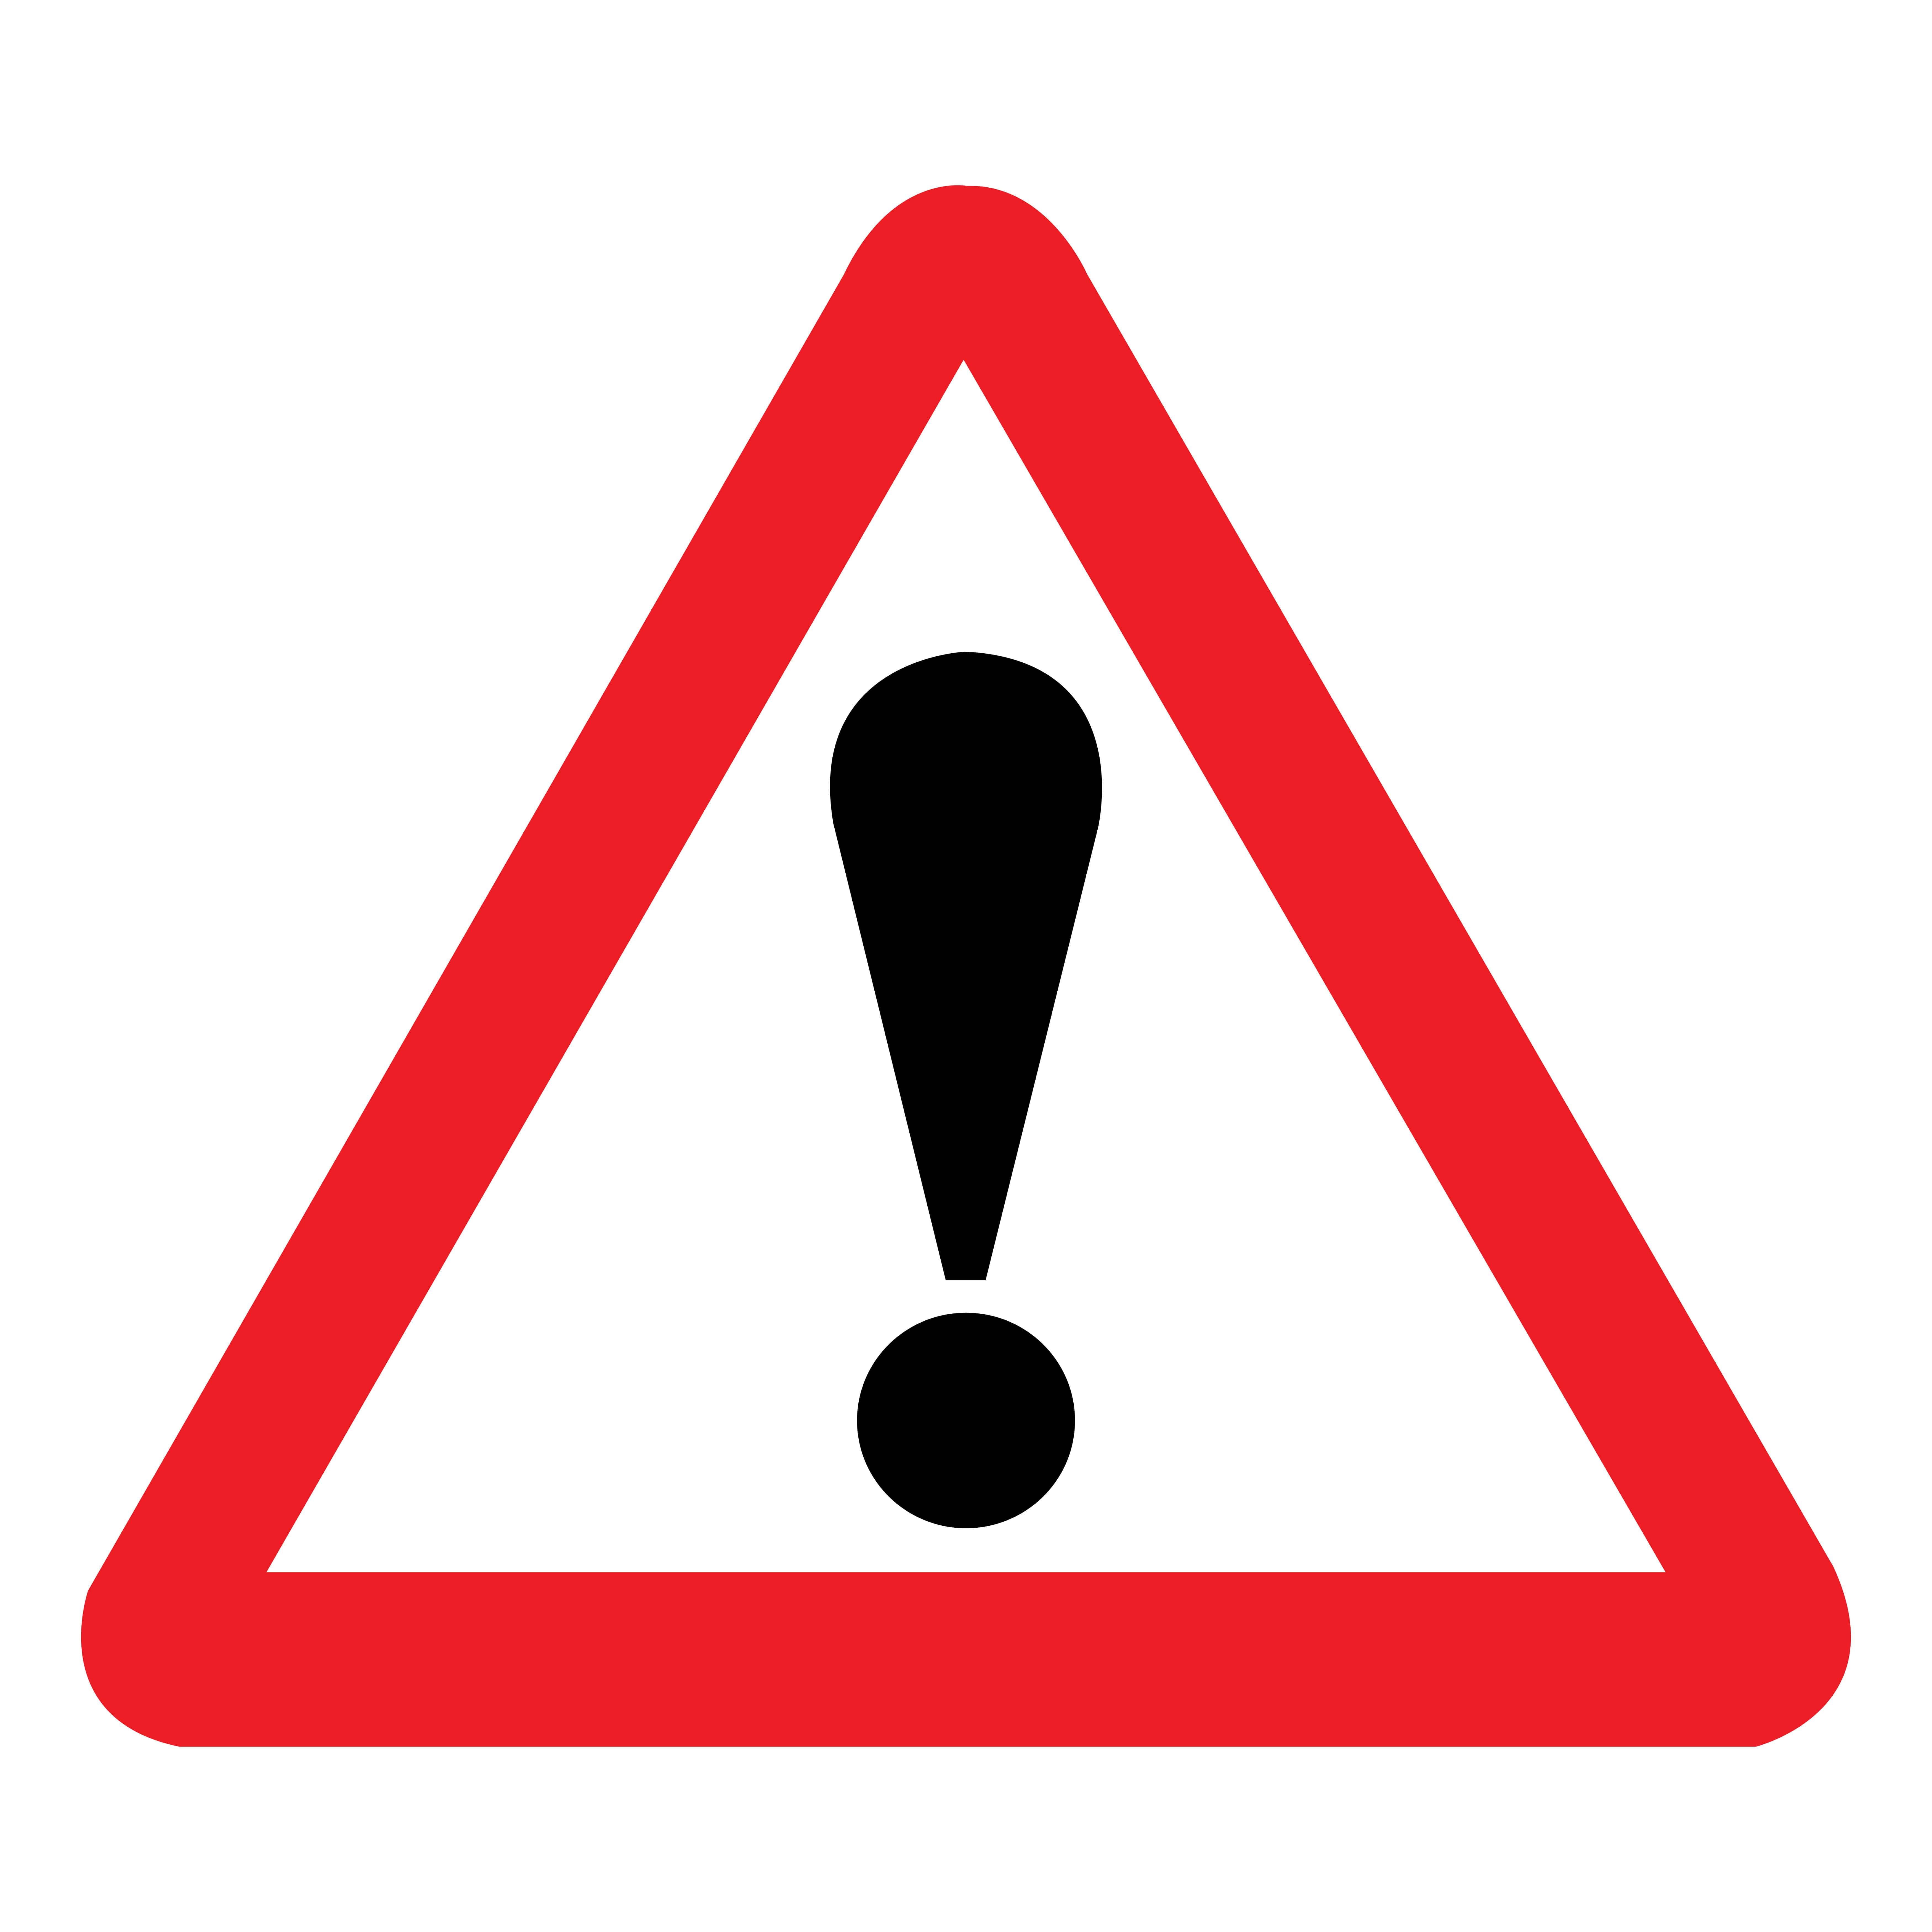 Car with hazard lights on clipart clip art black and white stock Hazard Perception Tests - 10 Examples of Dangers to Look For clip art black and white stock